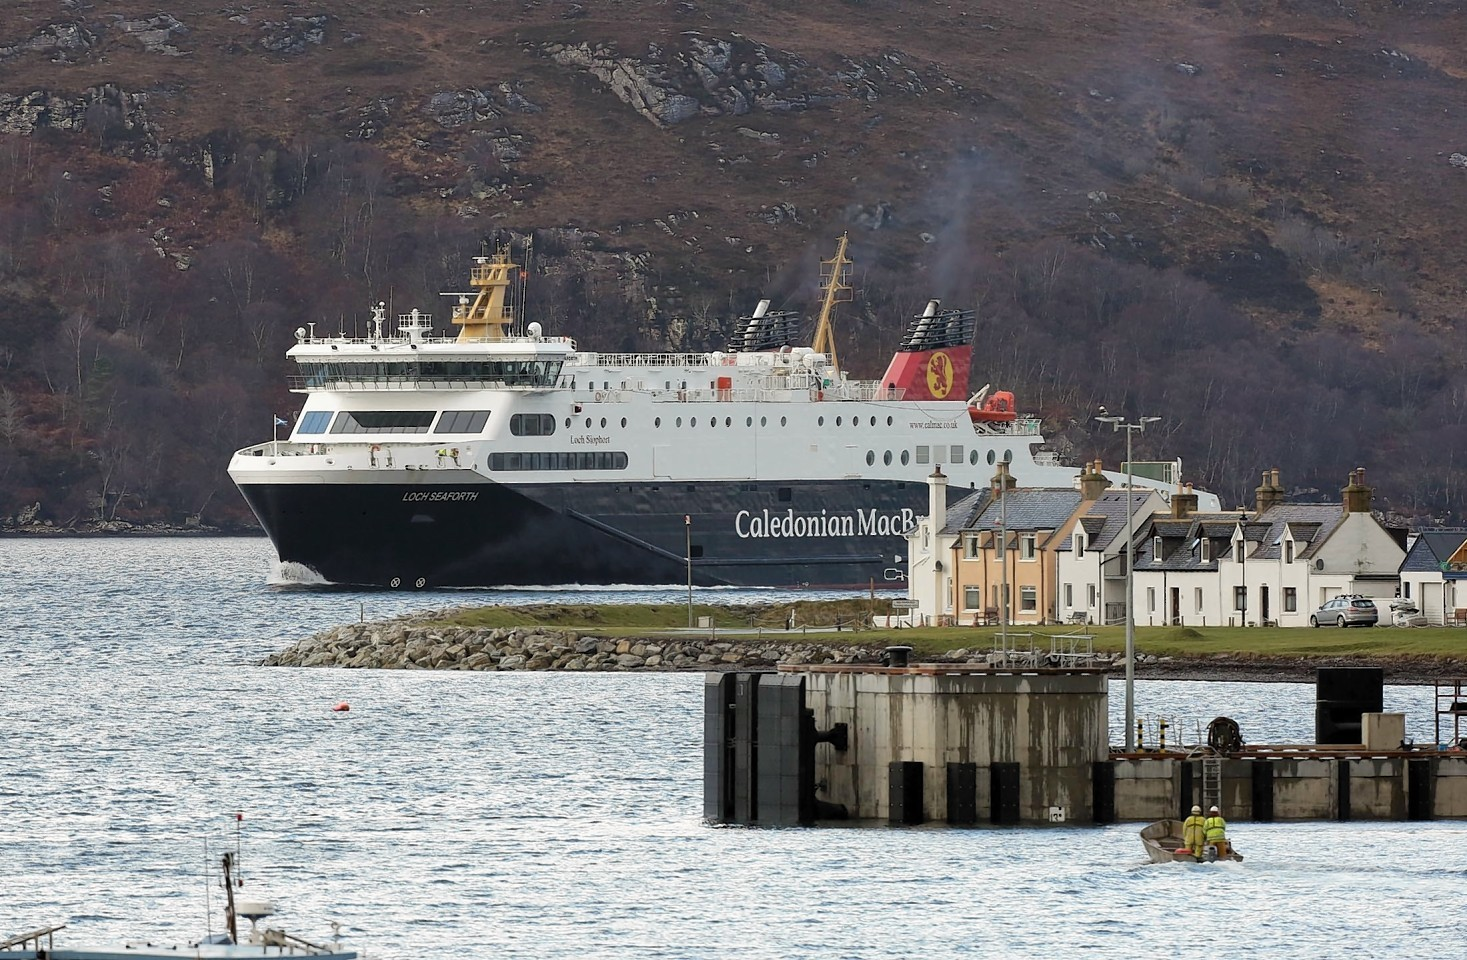 ferries will continue to operate from Port Ellen on the current timetable